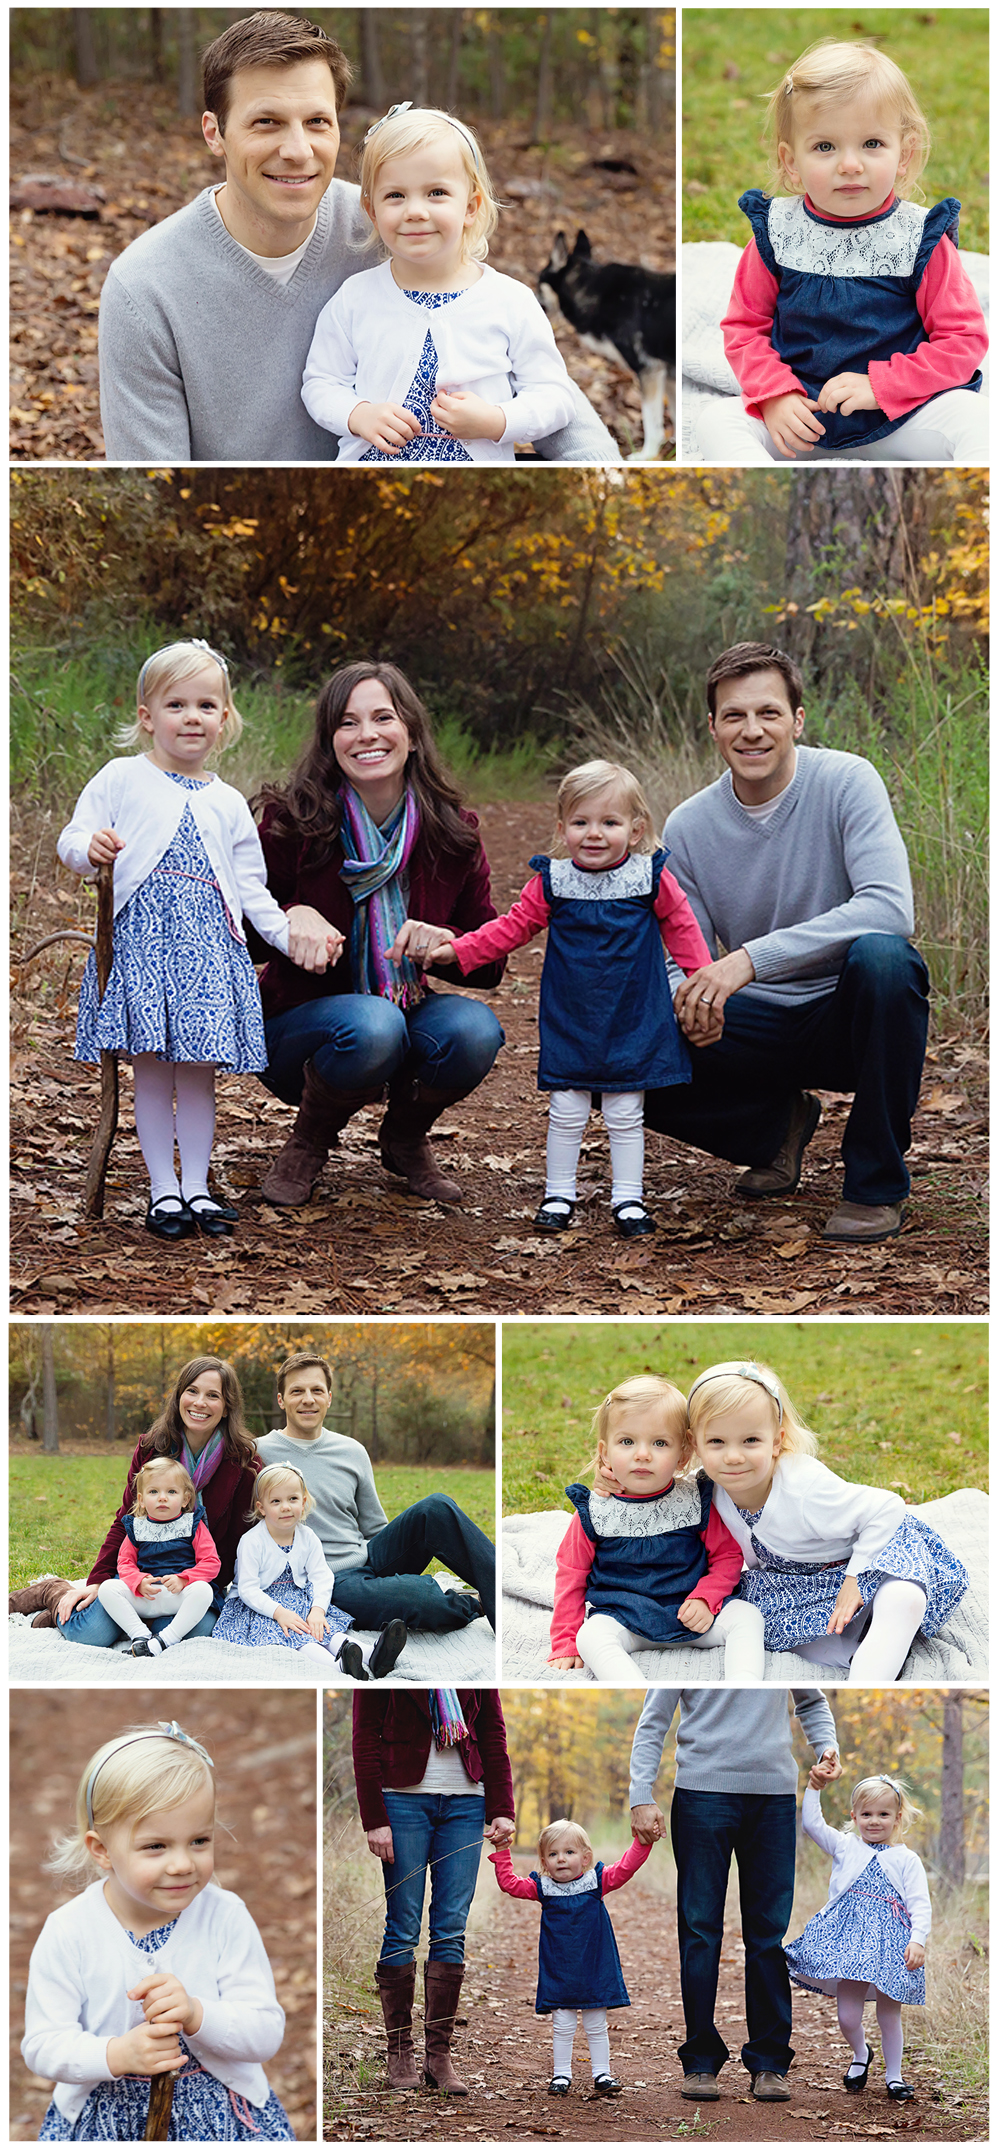 Such an adorable family of four!